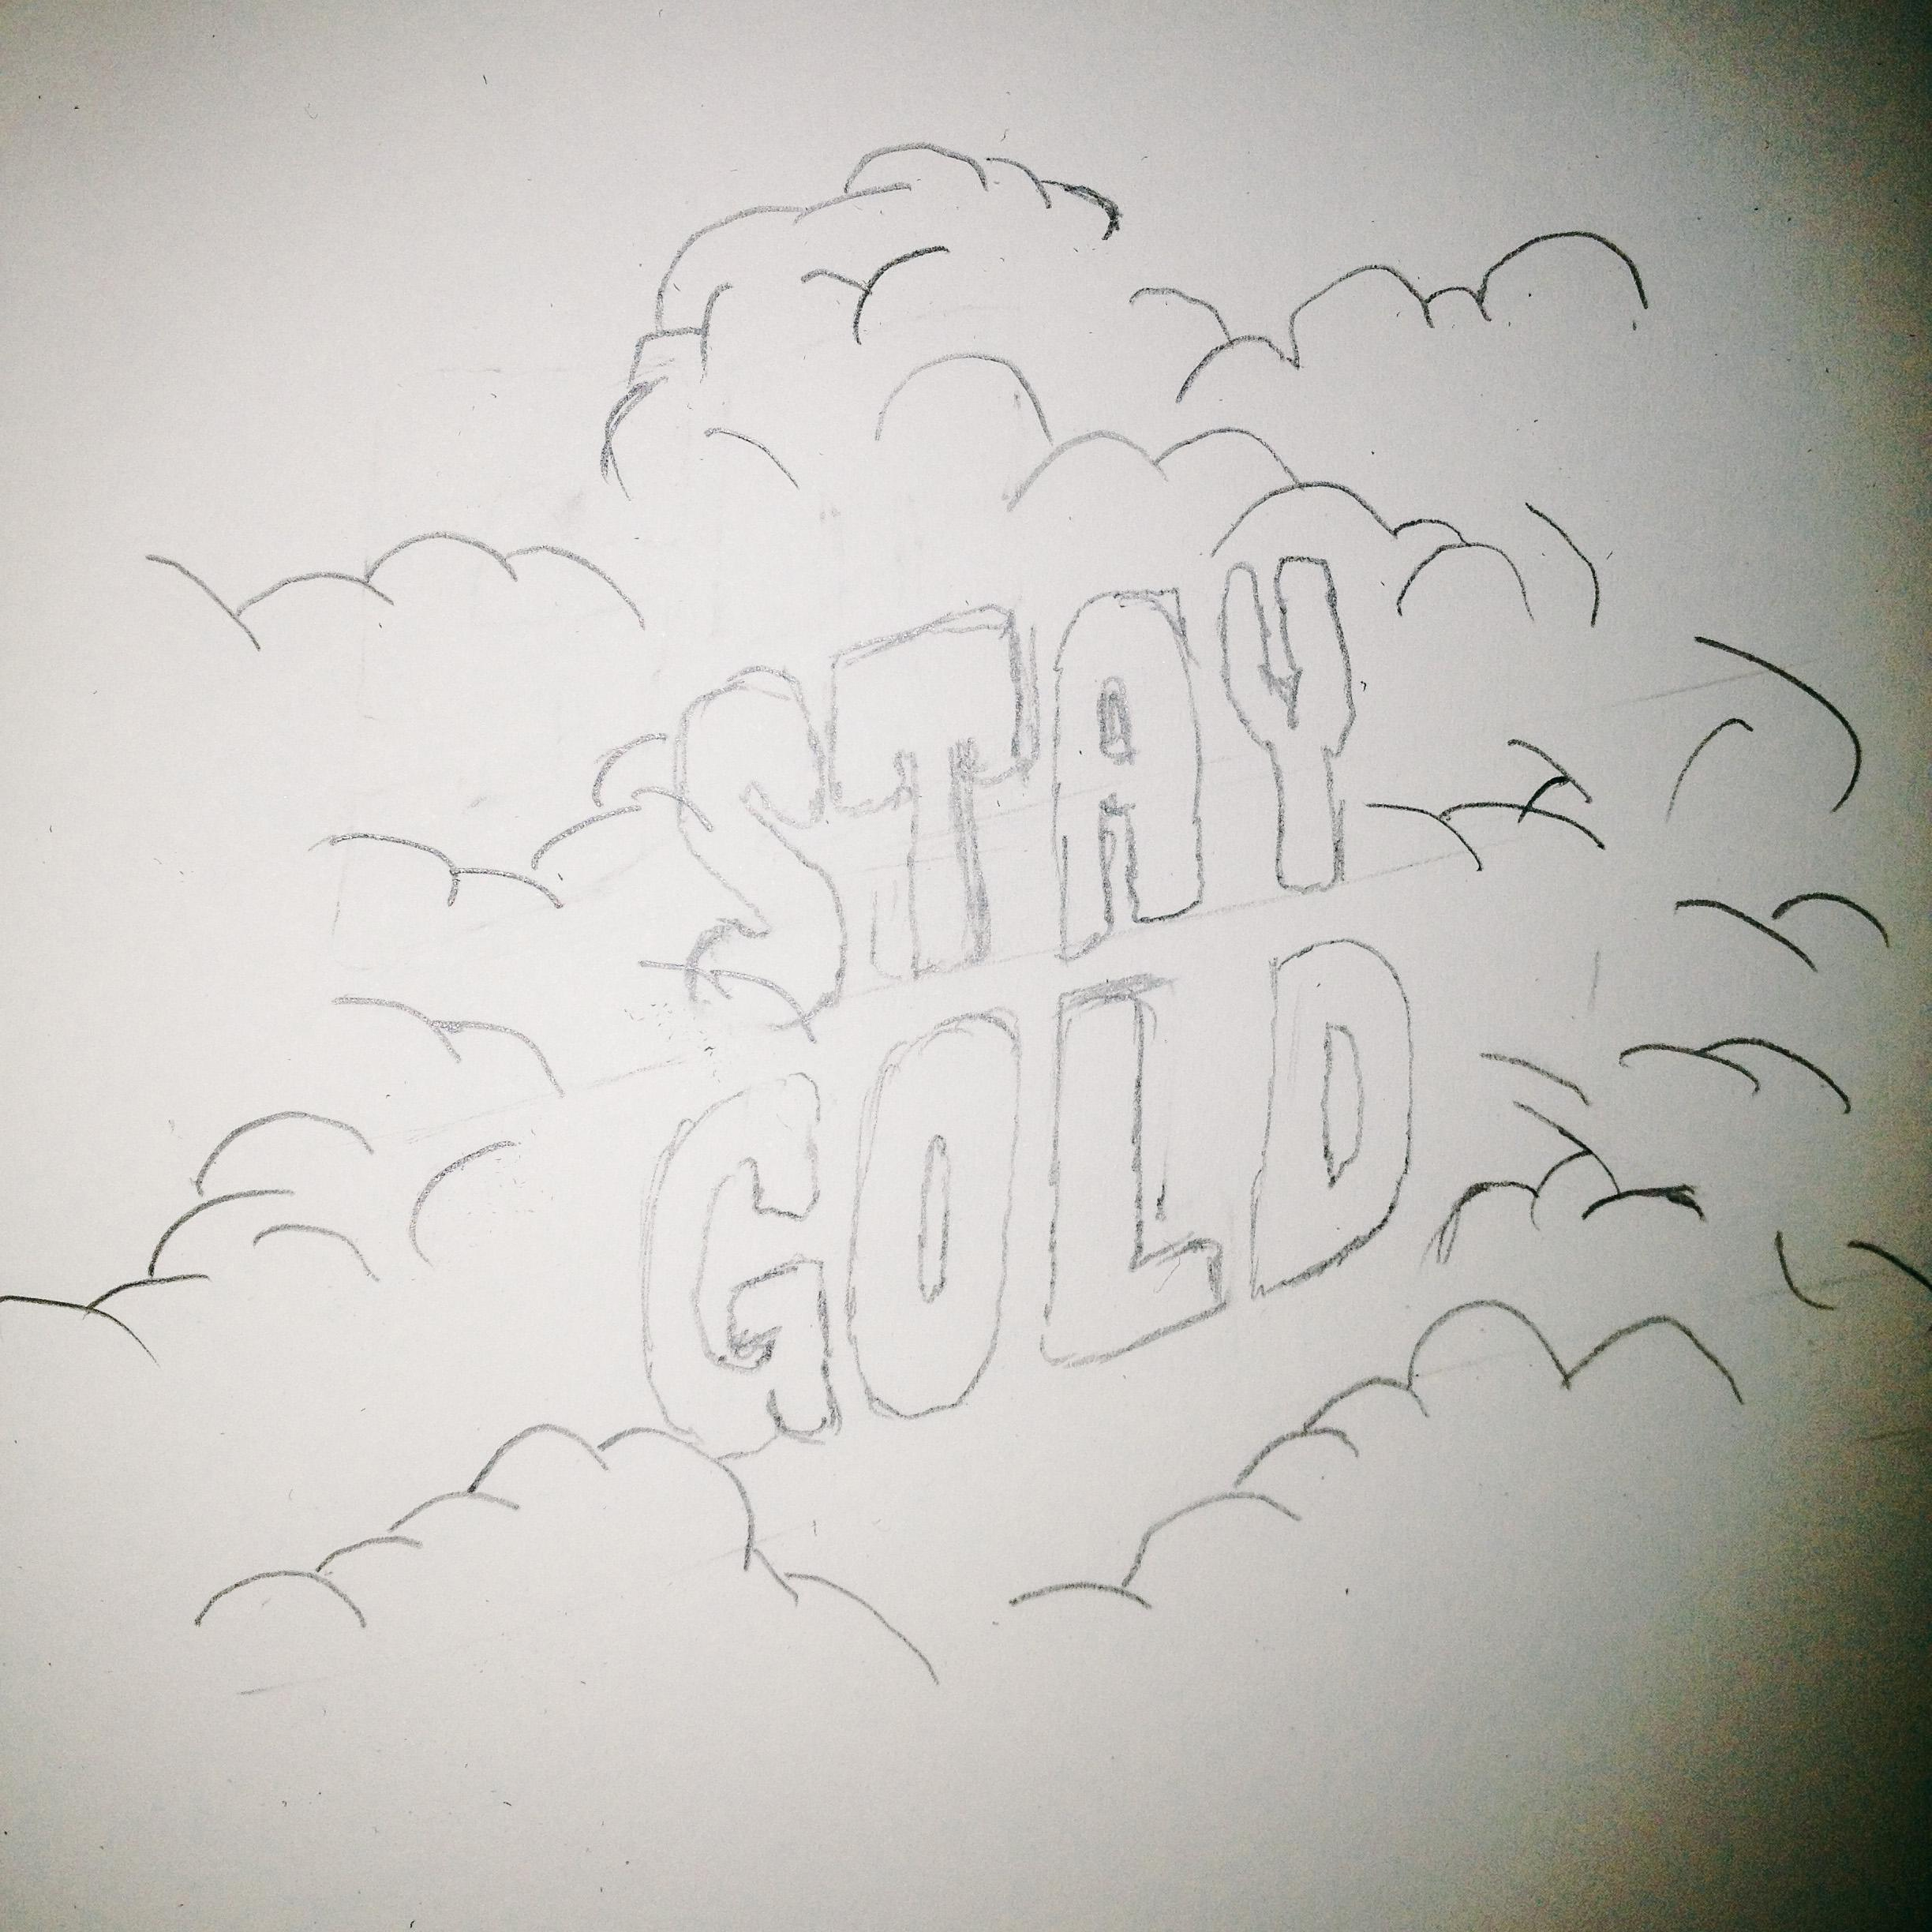 MYOF Clothing x Benny Gold - image 6 - student project